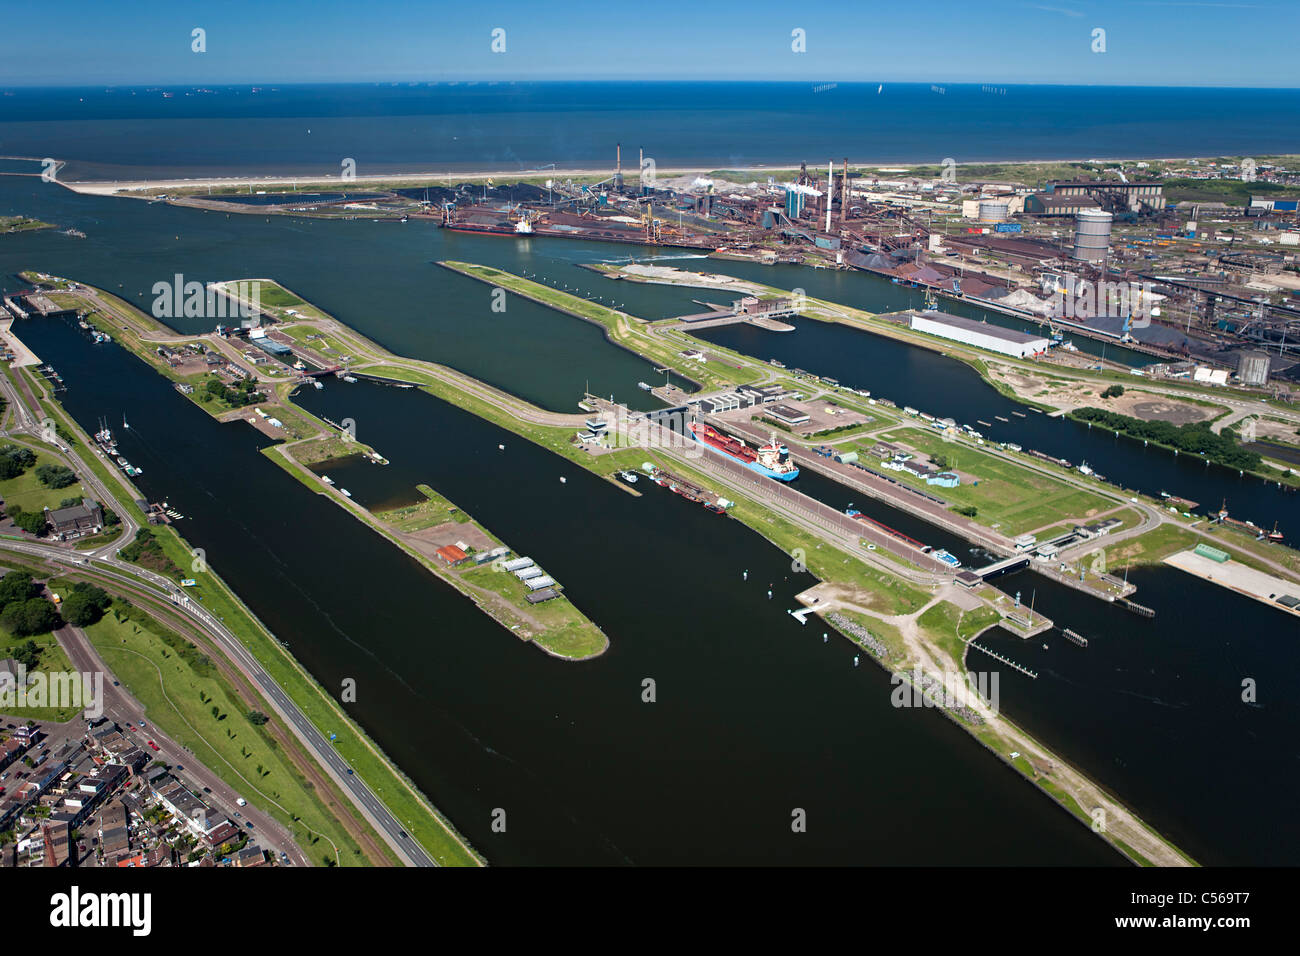 The Netherlands, IJmuiden, Aerial view of entrance and locks of North Sea Canal. Right Tata steel factory. - Stock Image